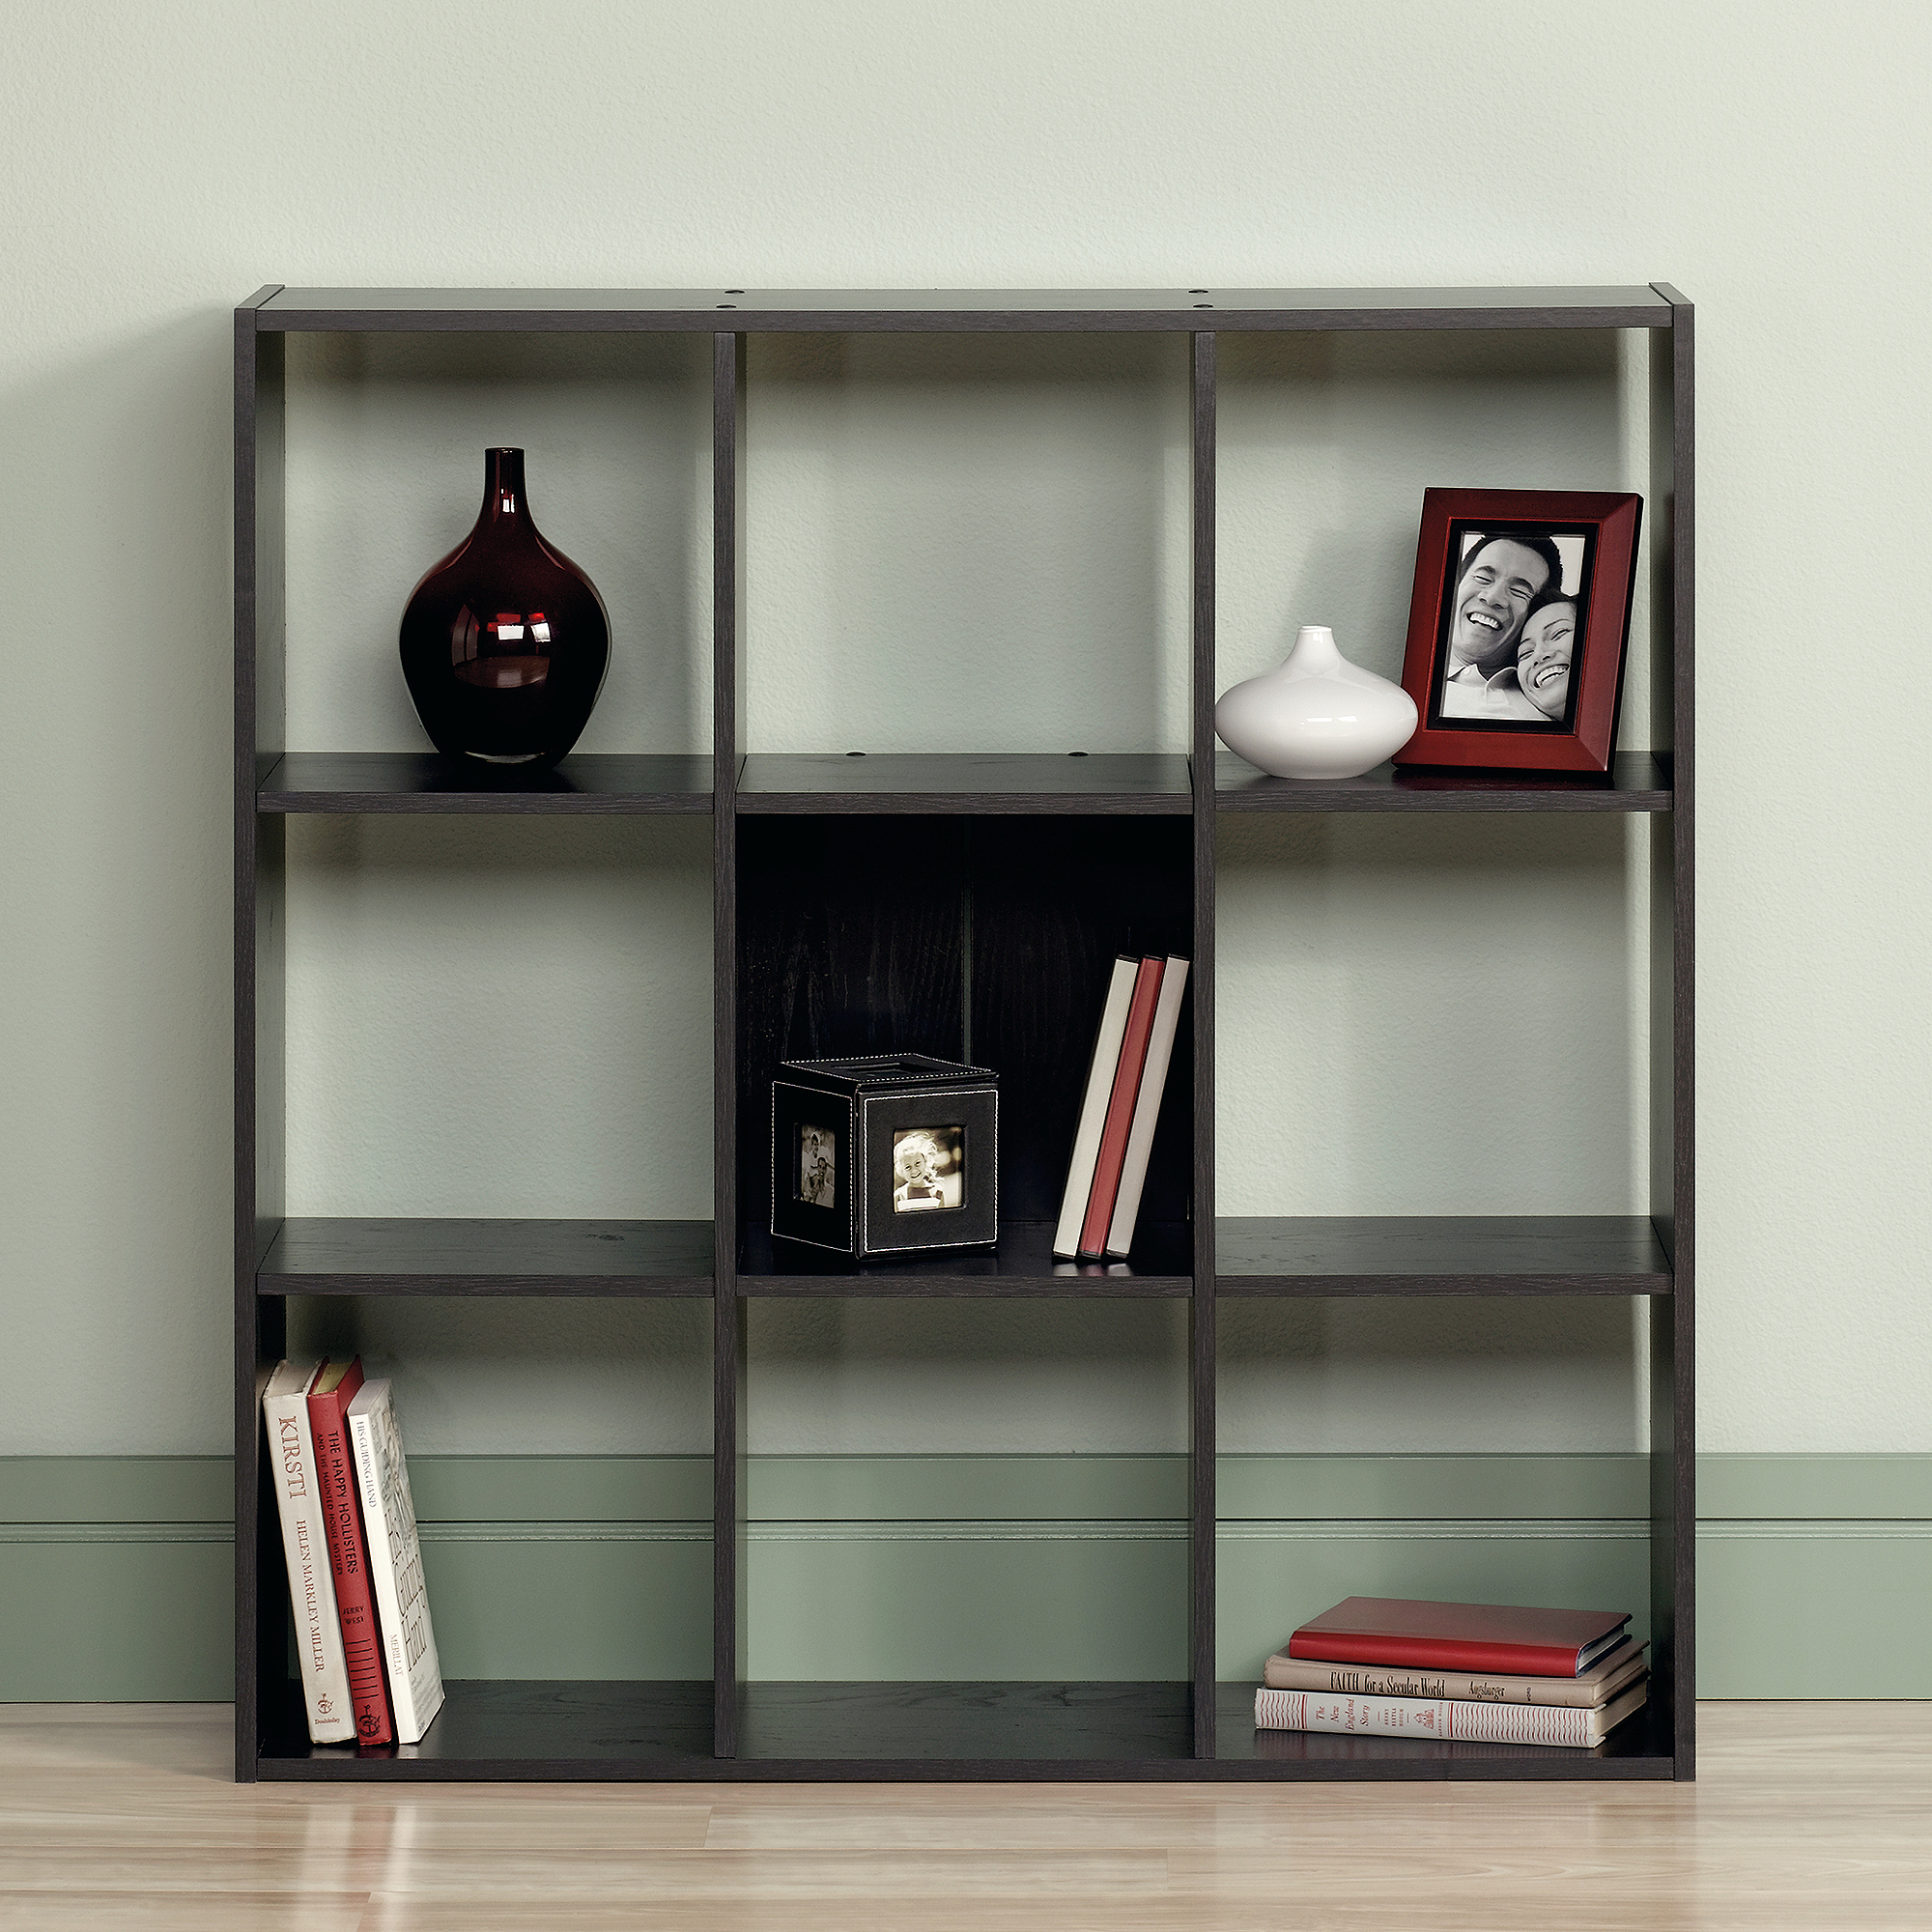 Sauder Beginnings Organizer Bookcase, Ebony Ash